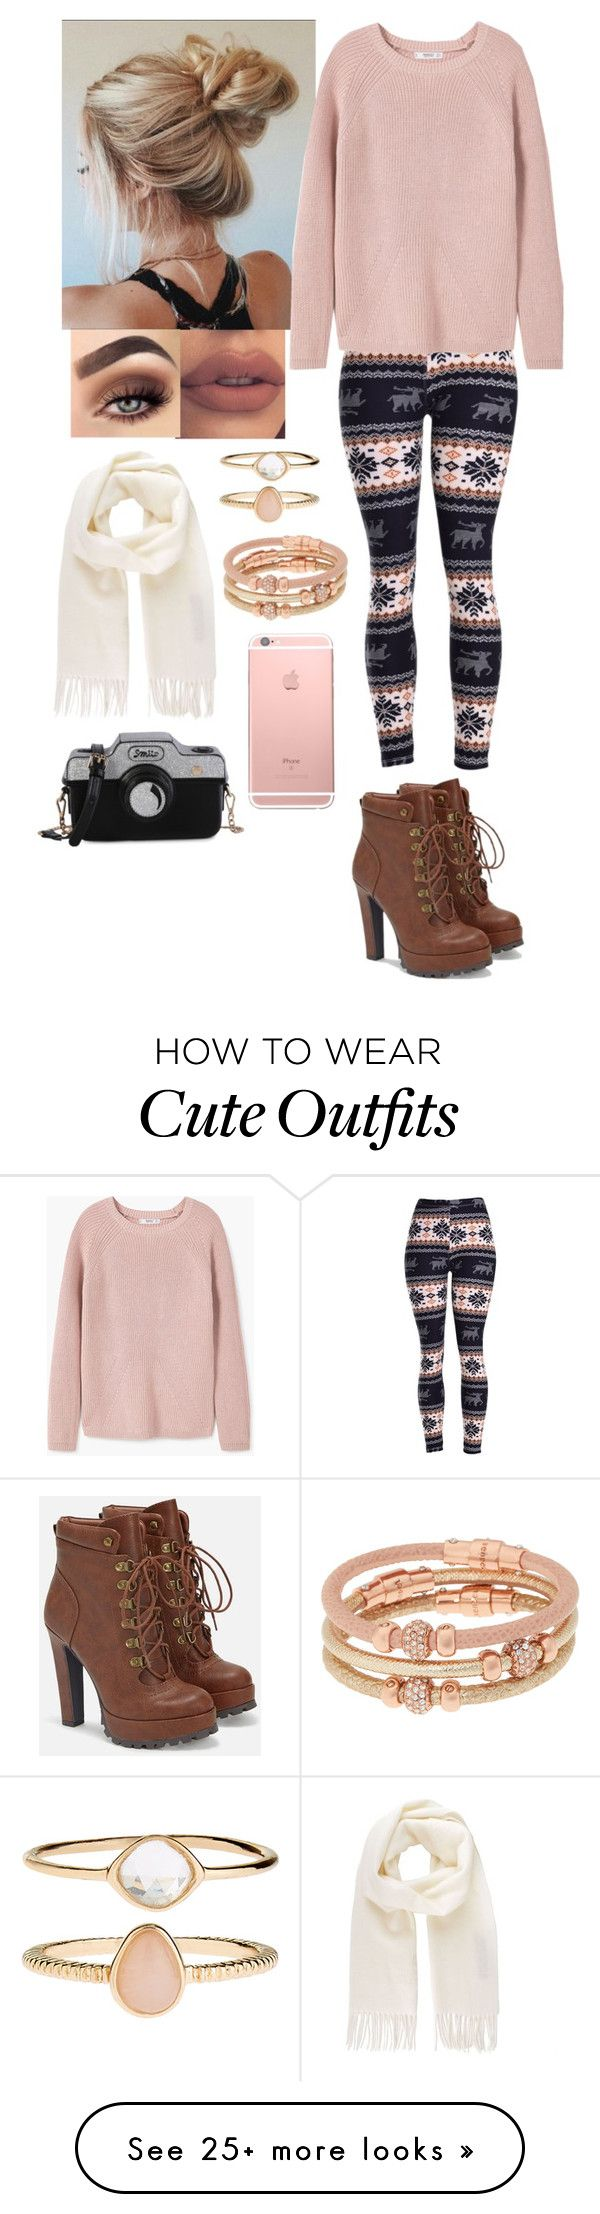 """Sweater Weather Cute Outfit #41"" by directioner66234 on Polyvore featuring MANGO, Vivienne Westwood, JustFab, Accessorize and Henri Bendel"